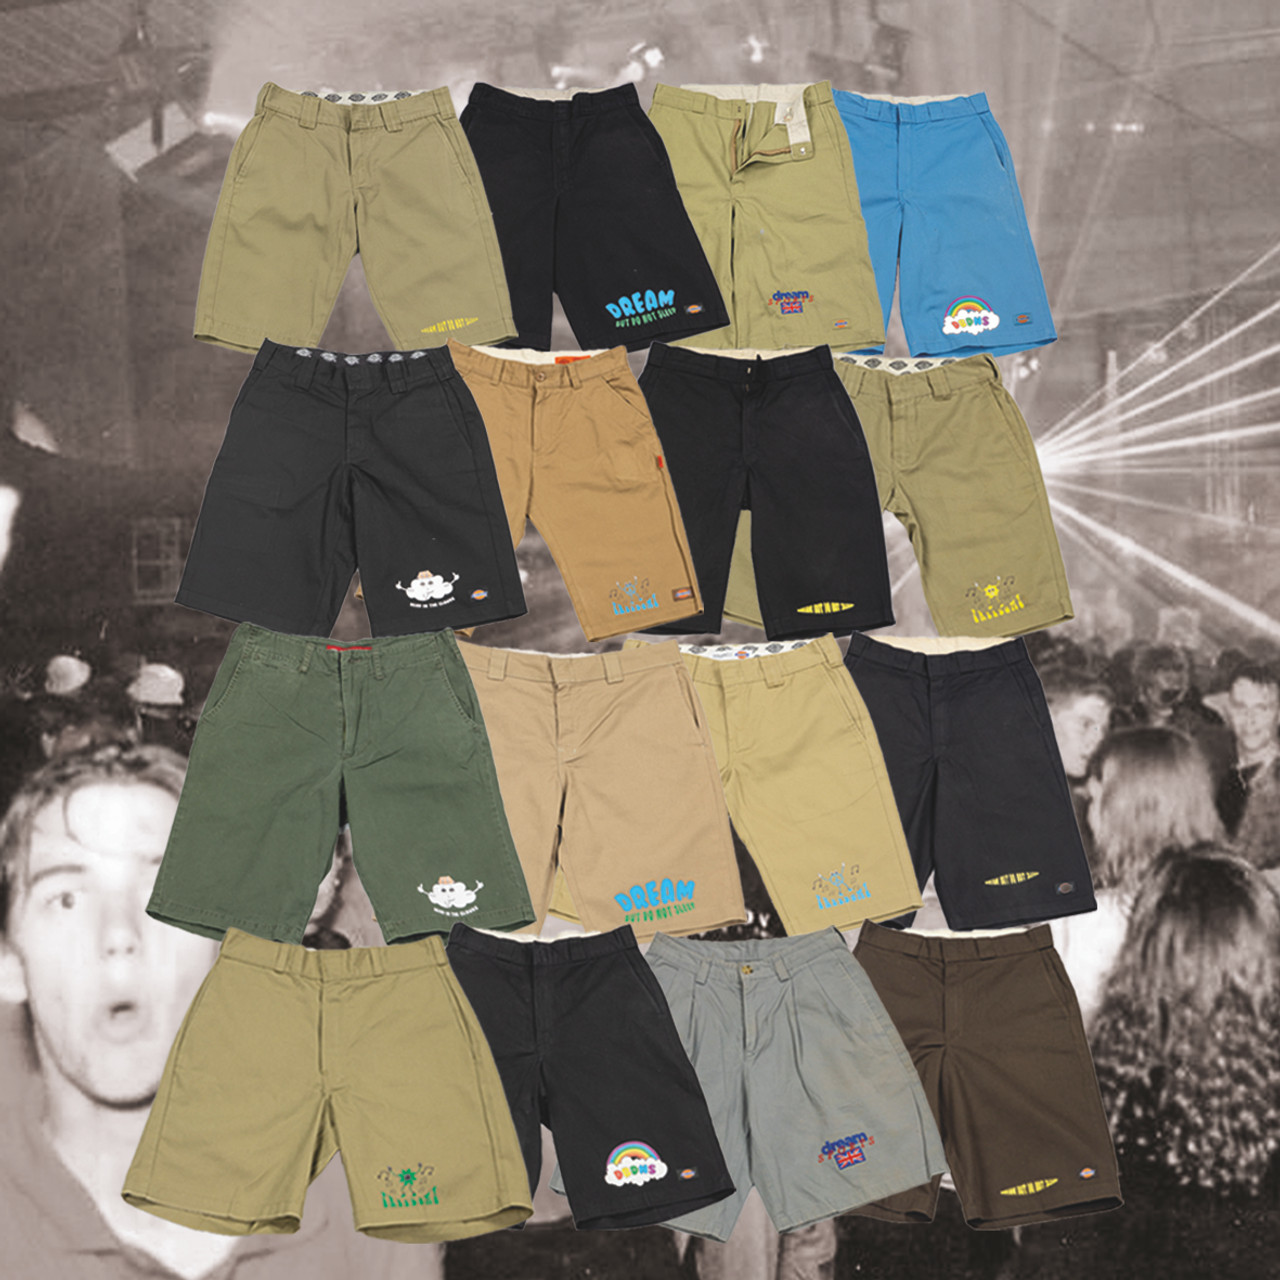 Introducing Our Reworked Vintage Dickies Shorts!